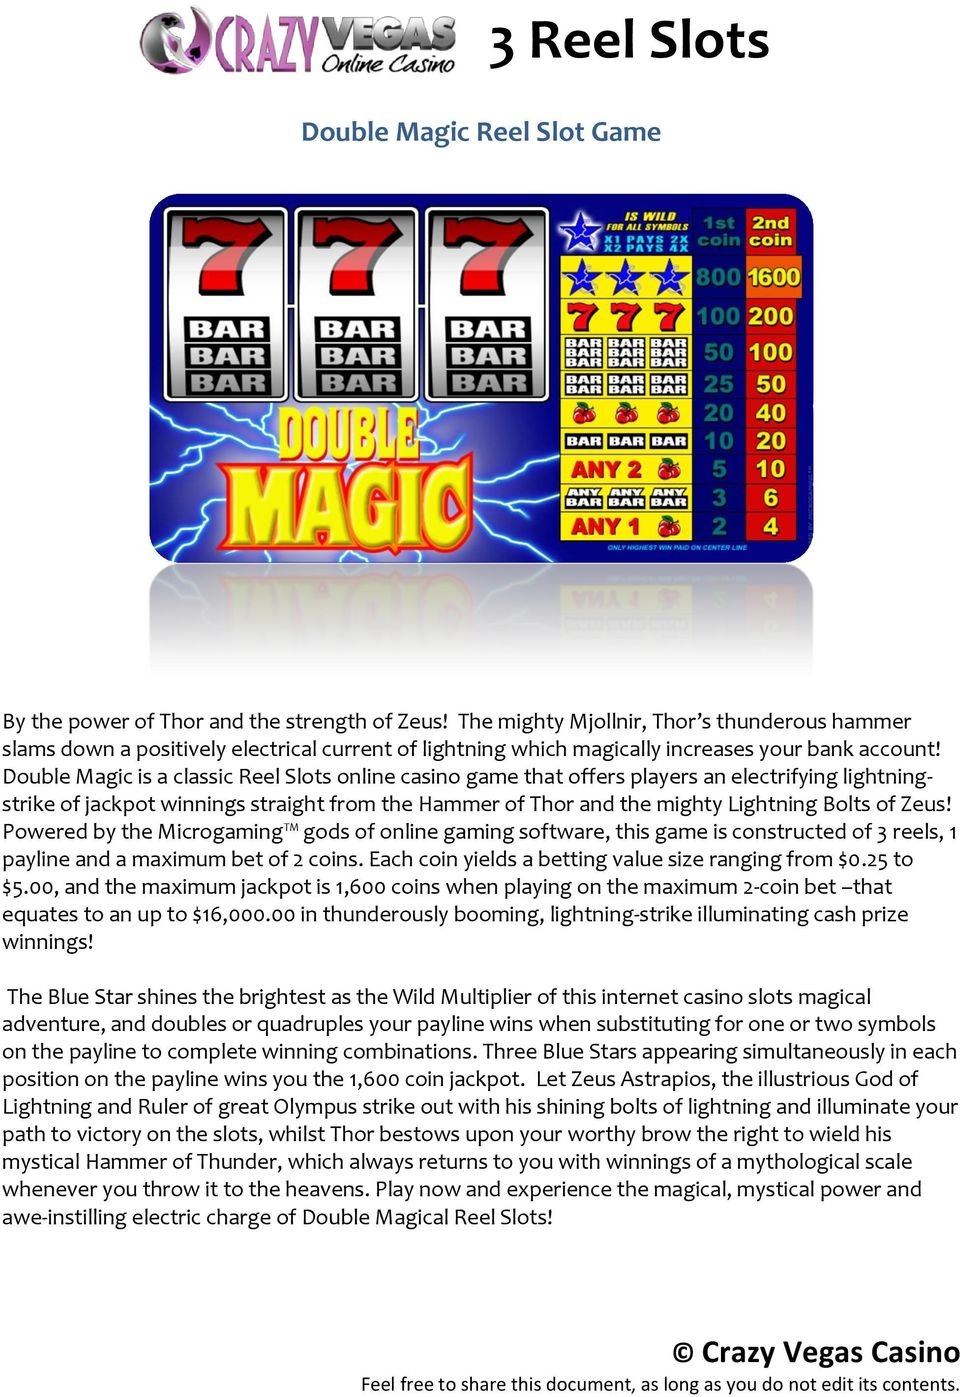 Double Magic is a classic Reel Slots online casino game that offers players an electrifying lightningstrike of jackpot winnings straight from the Hammer of Thor and the mighty Lightning Bolts of Zeus!